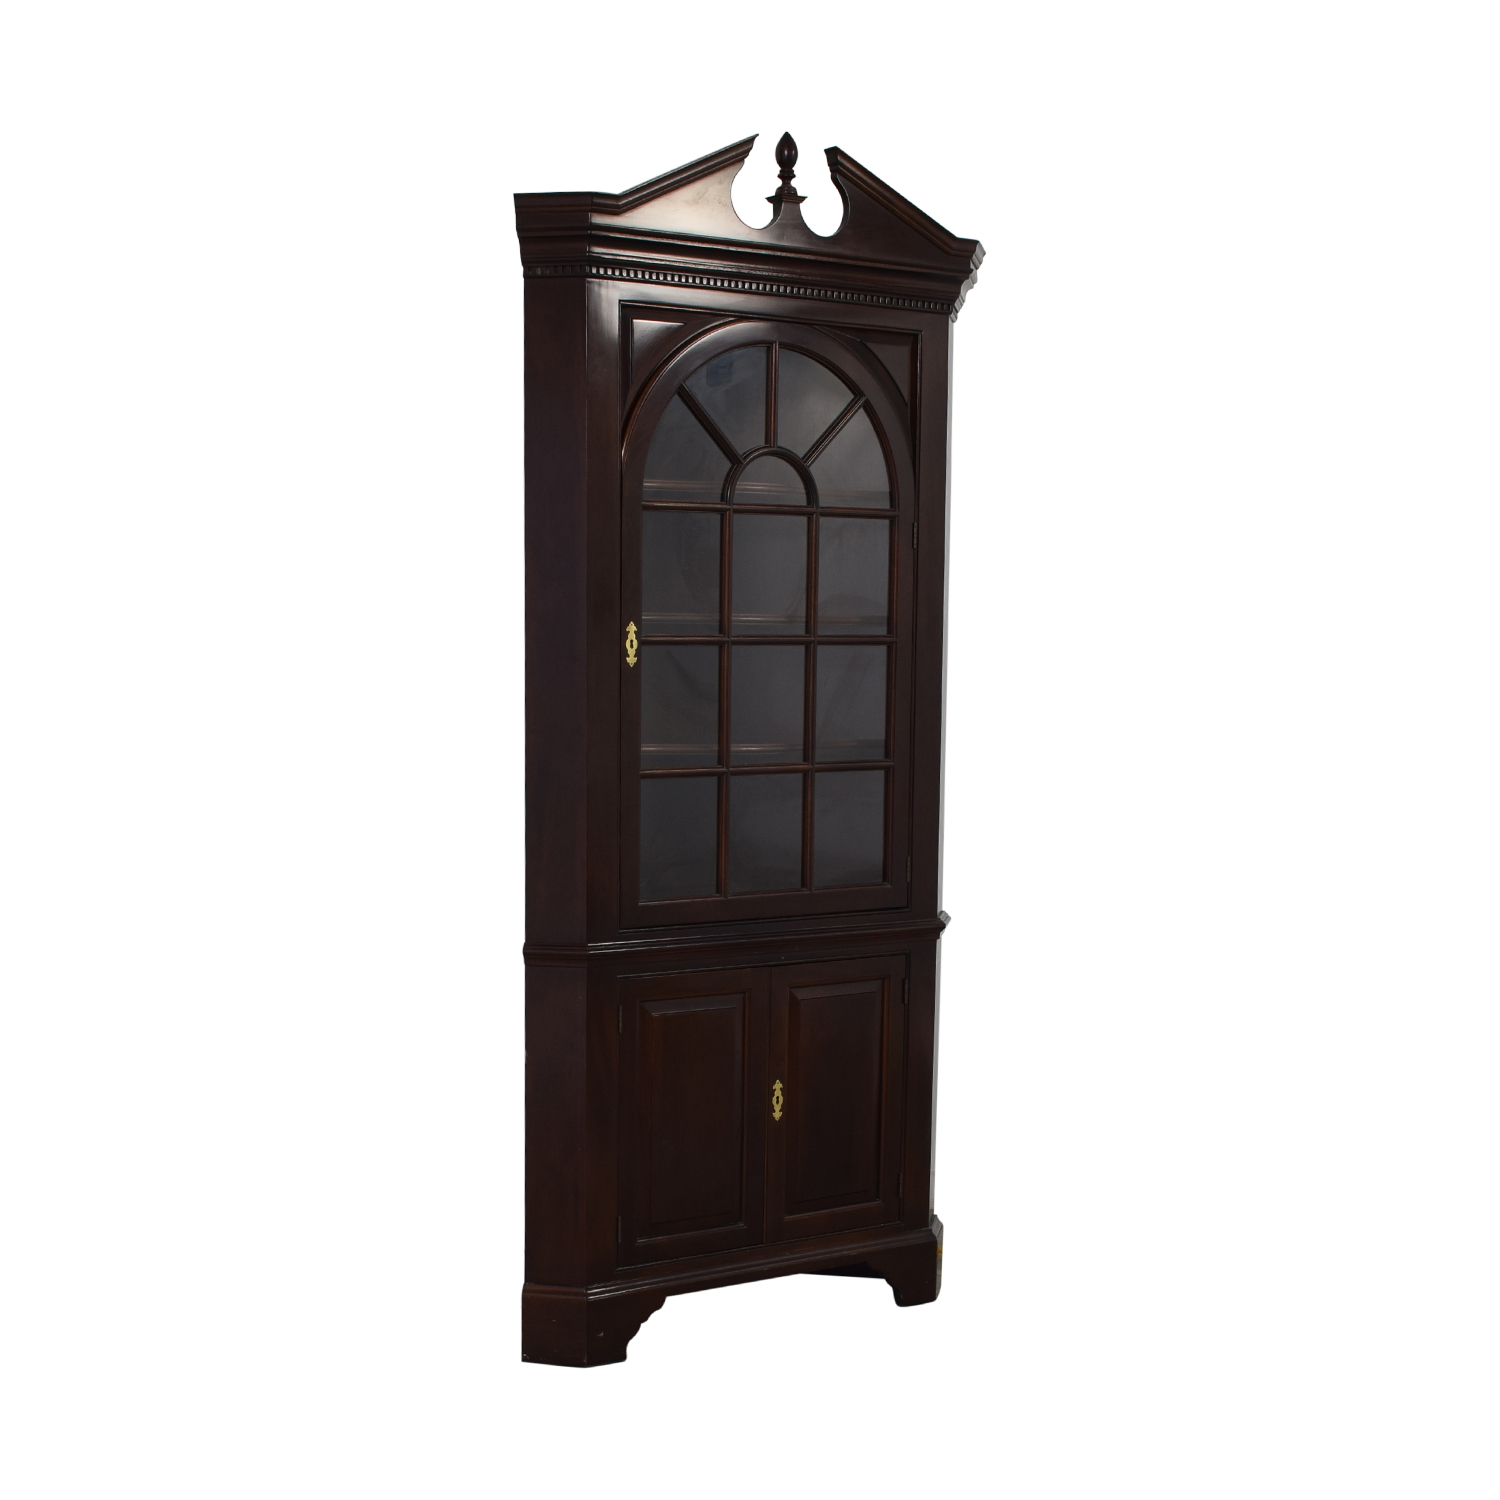 Stickley Furniture Stickley Furniture Corner Hutch coupon